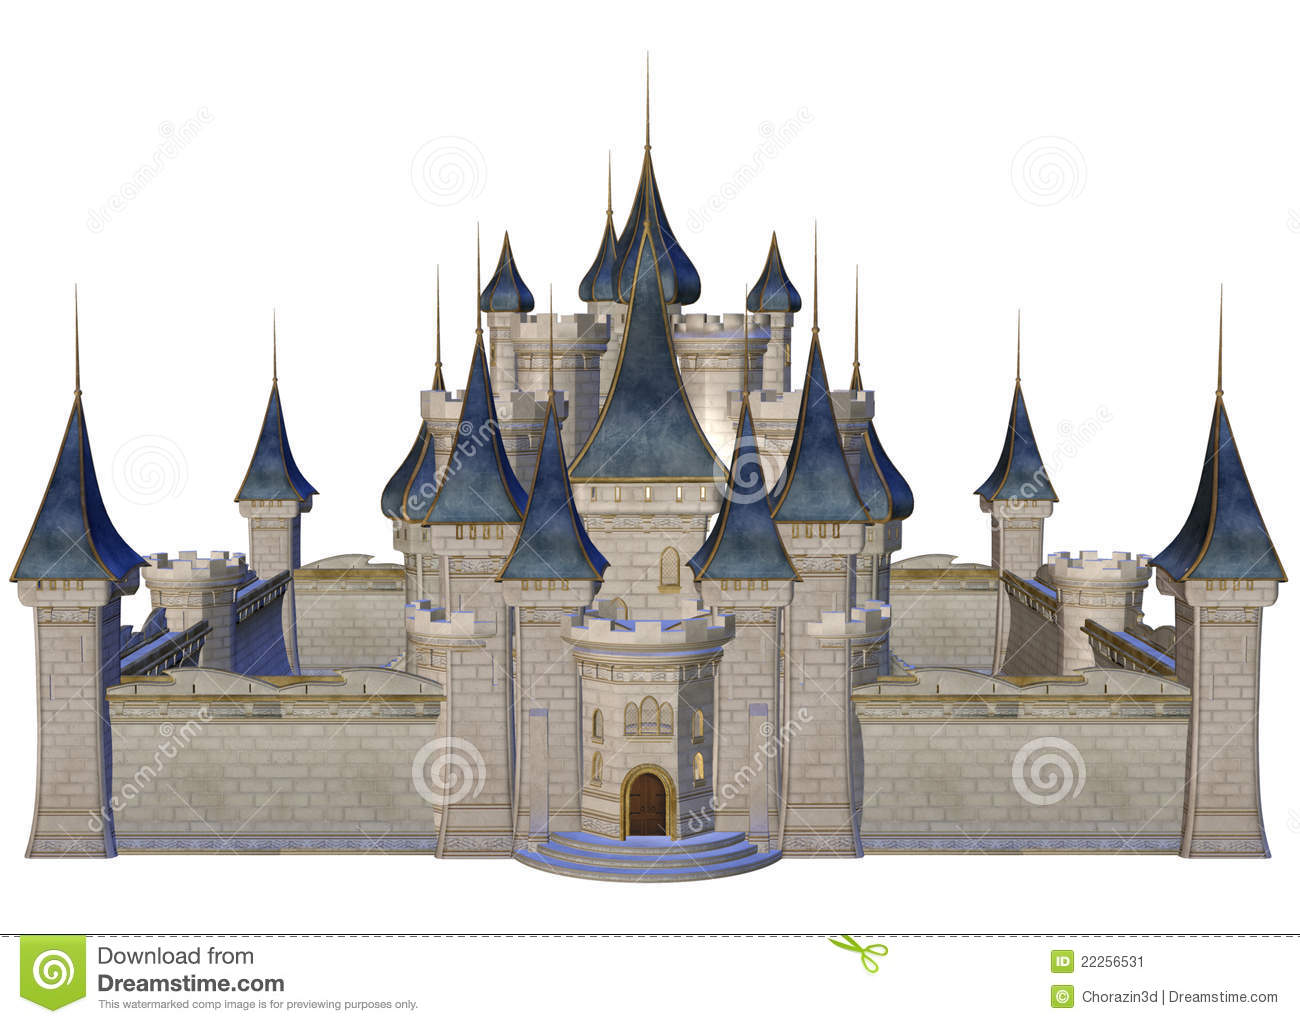 Fantasy castle clipart 2 » Clipart Station.